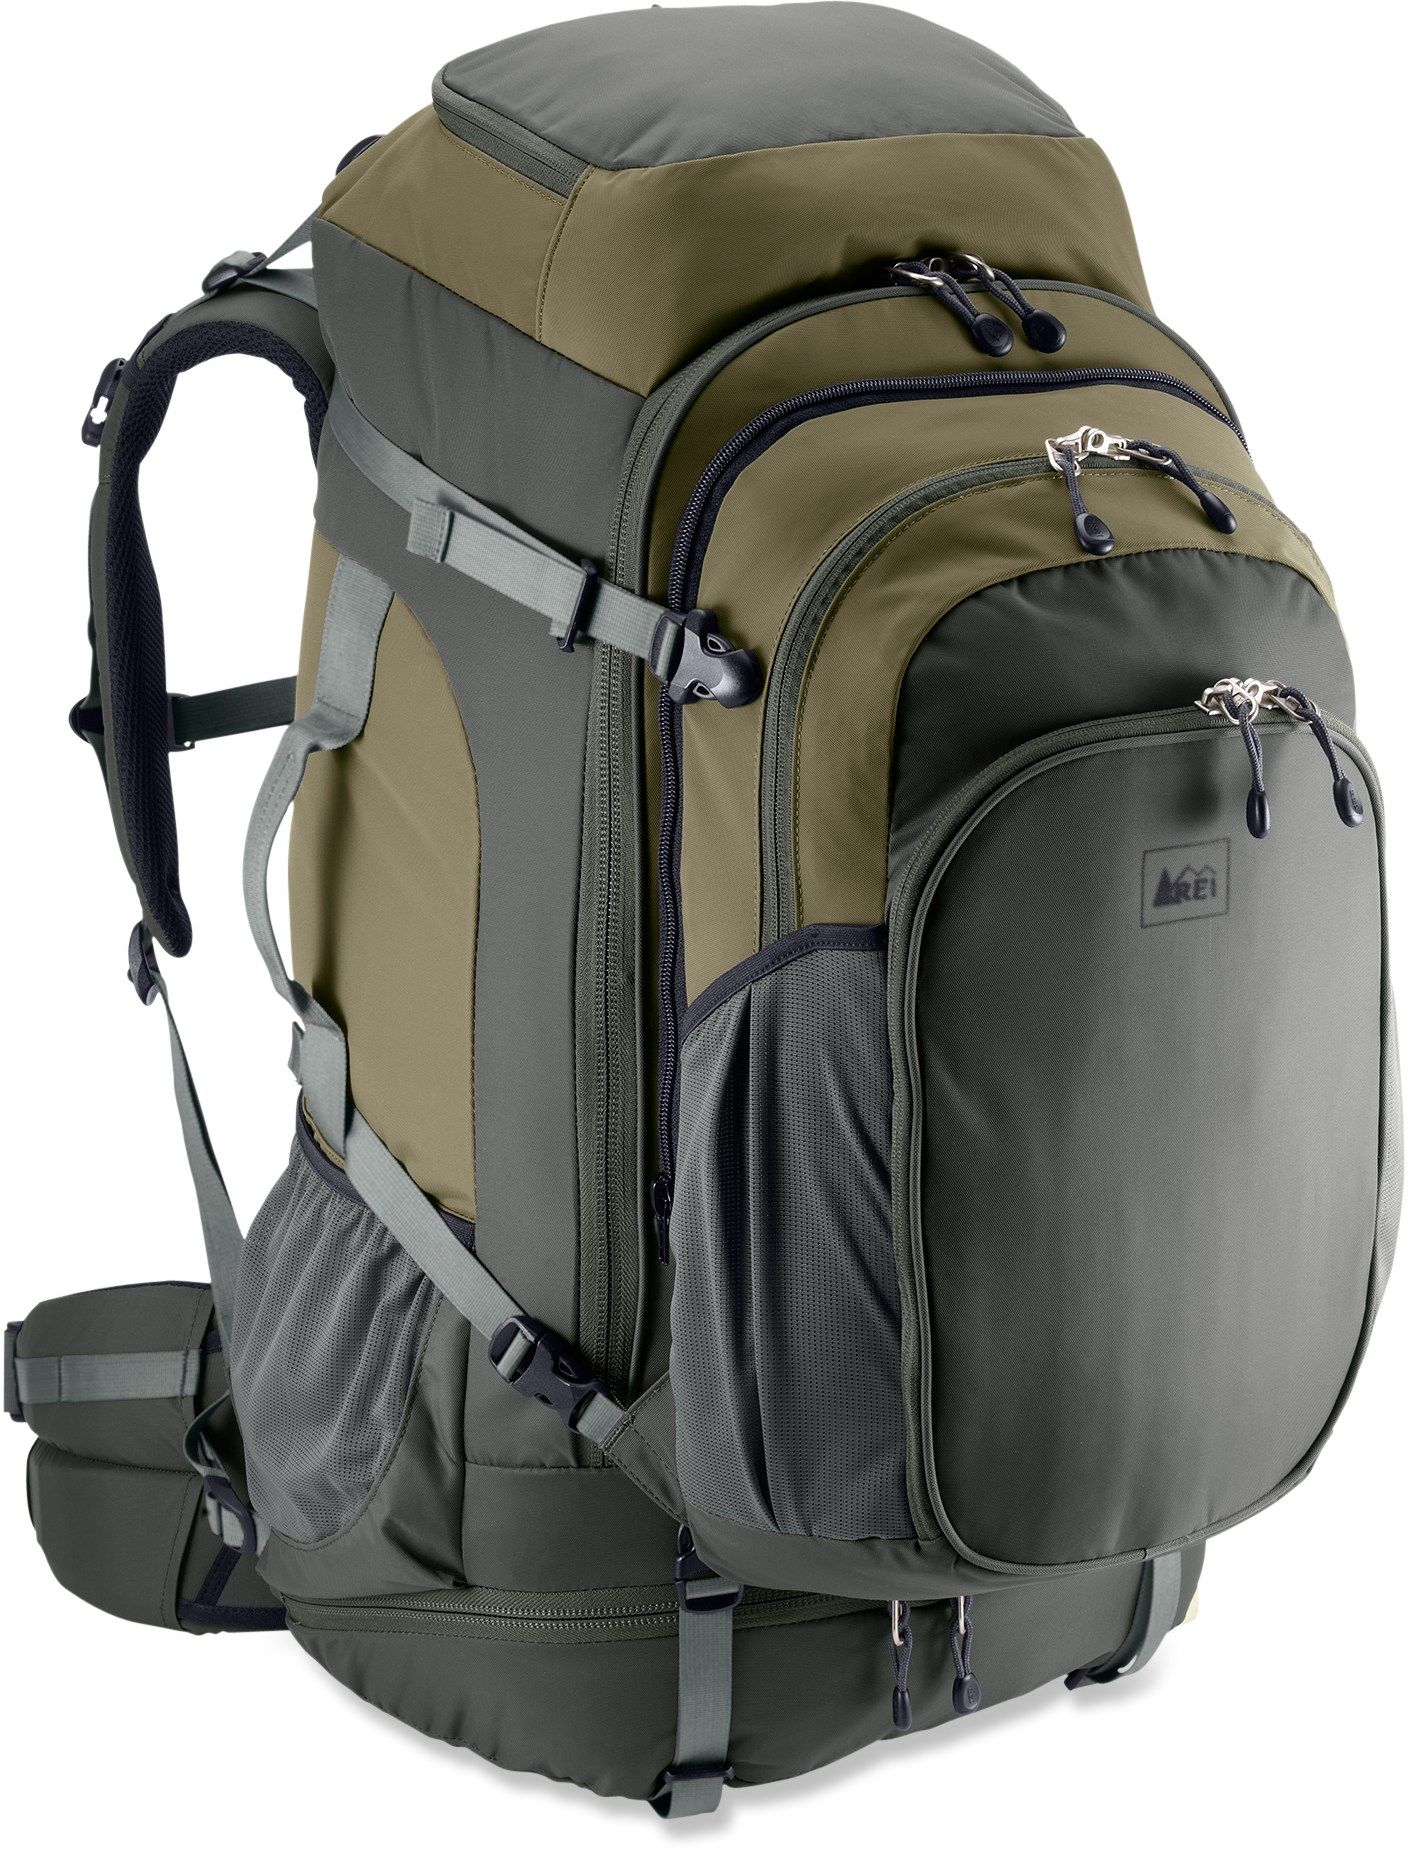 Grand Tour 85 Travel Pack - Men's | Travel, Products and Grand tour